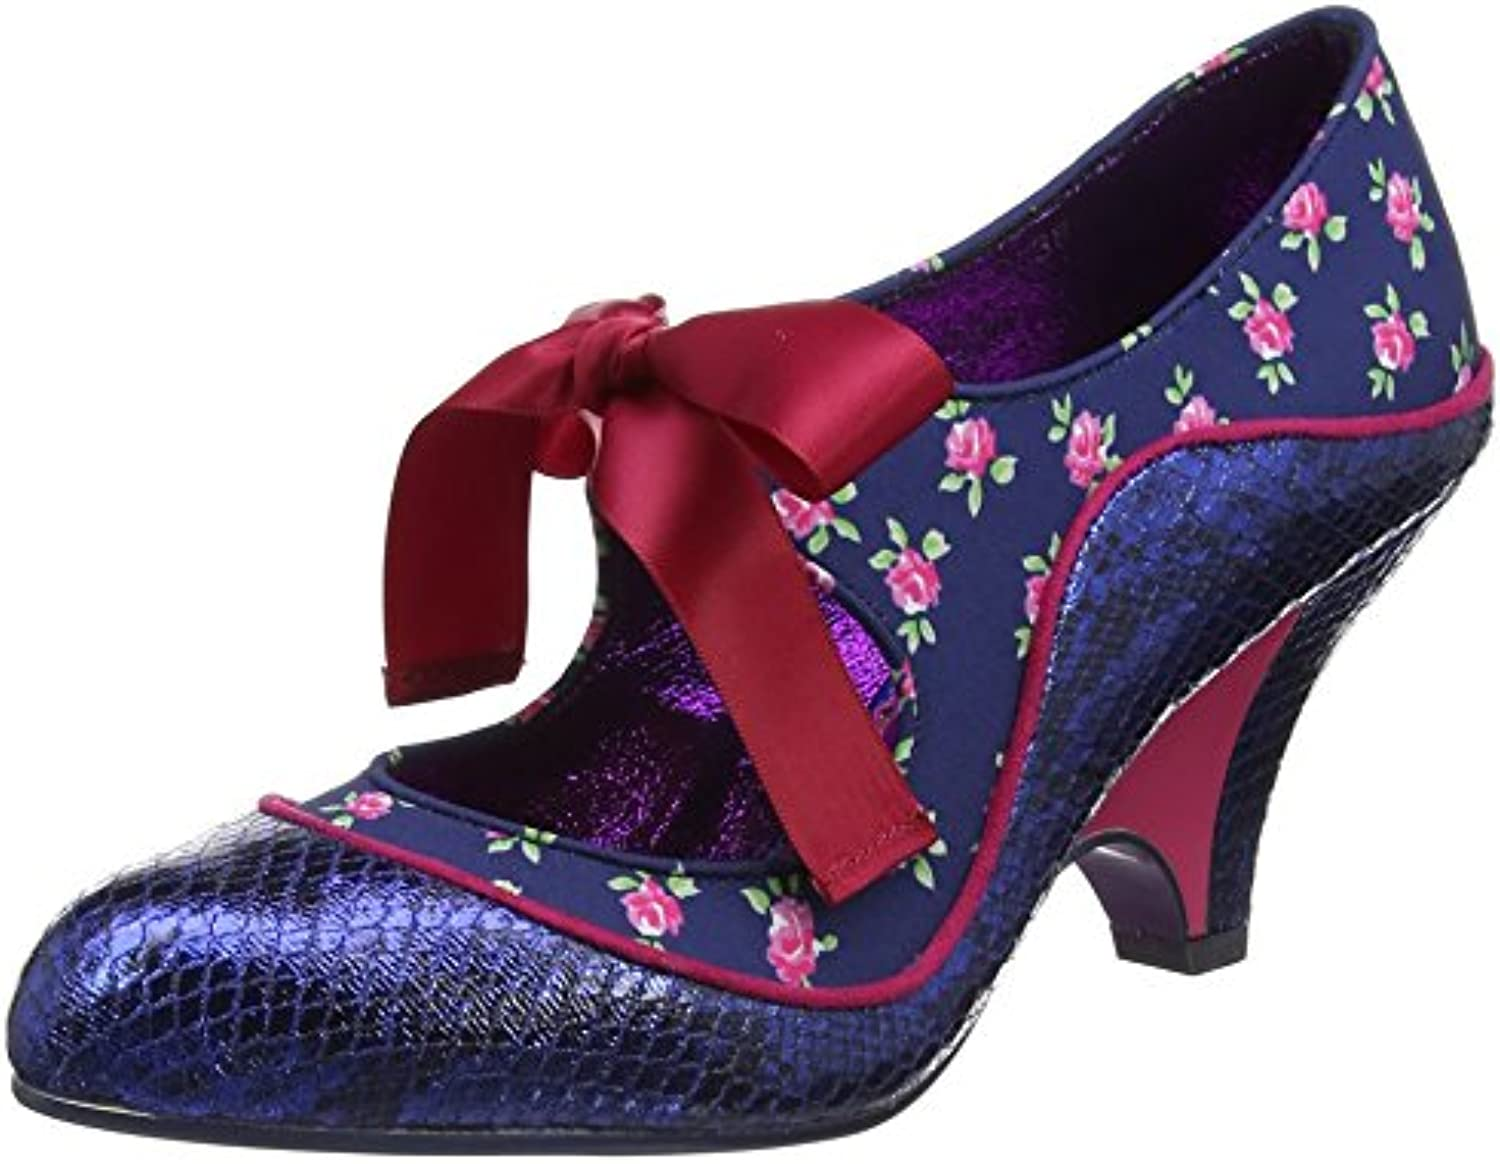 c457a76a9daaa4 Poetic Licence Licence Licence by Irregular Choice Schools Out, Escarpins  Bout fermé FemmeB01NAYRPRAParent | Shopping Online a30f98